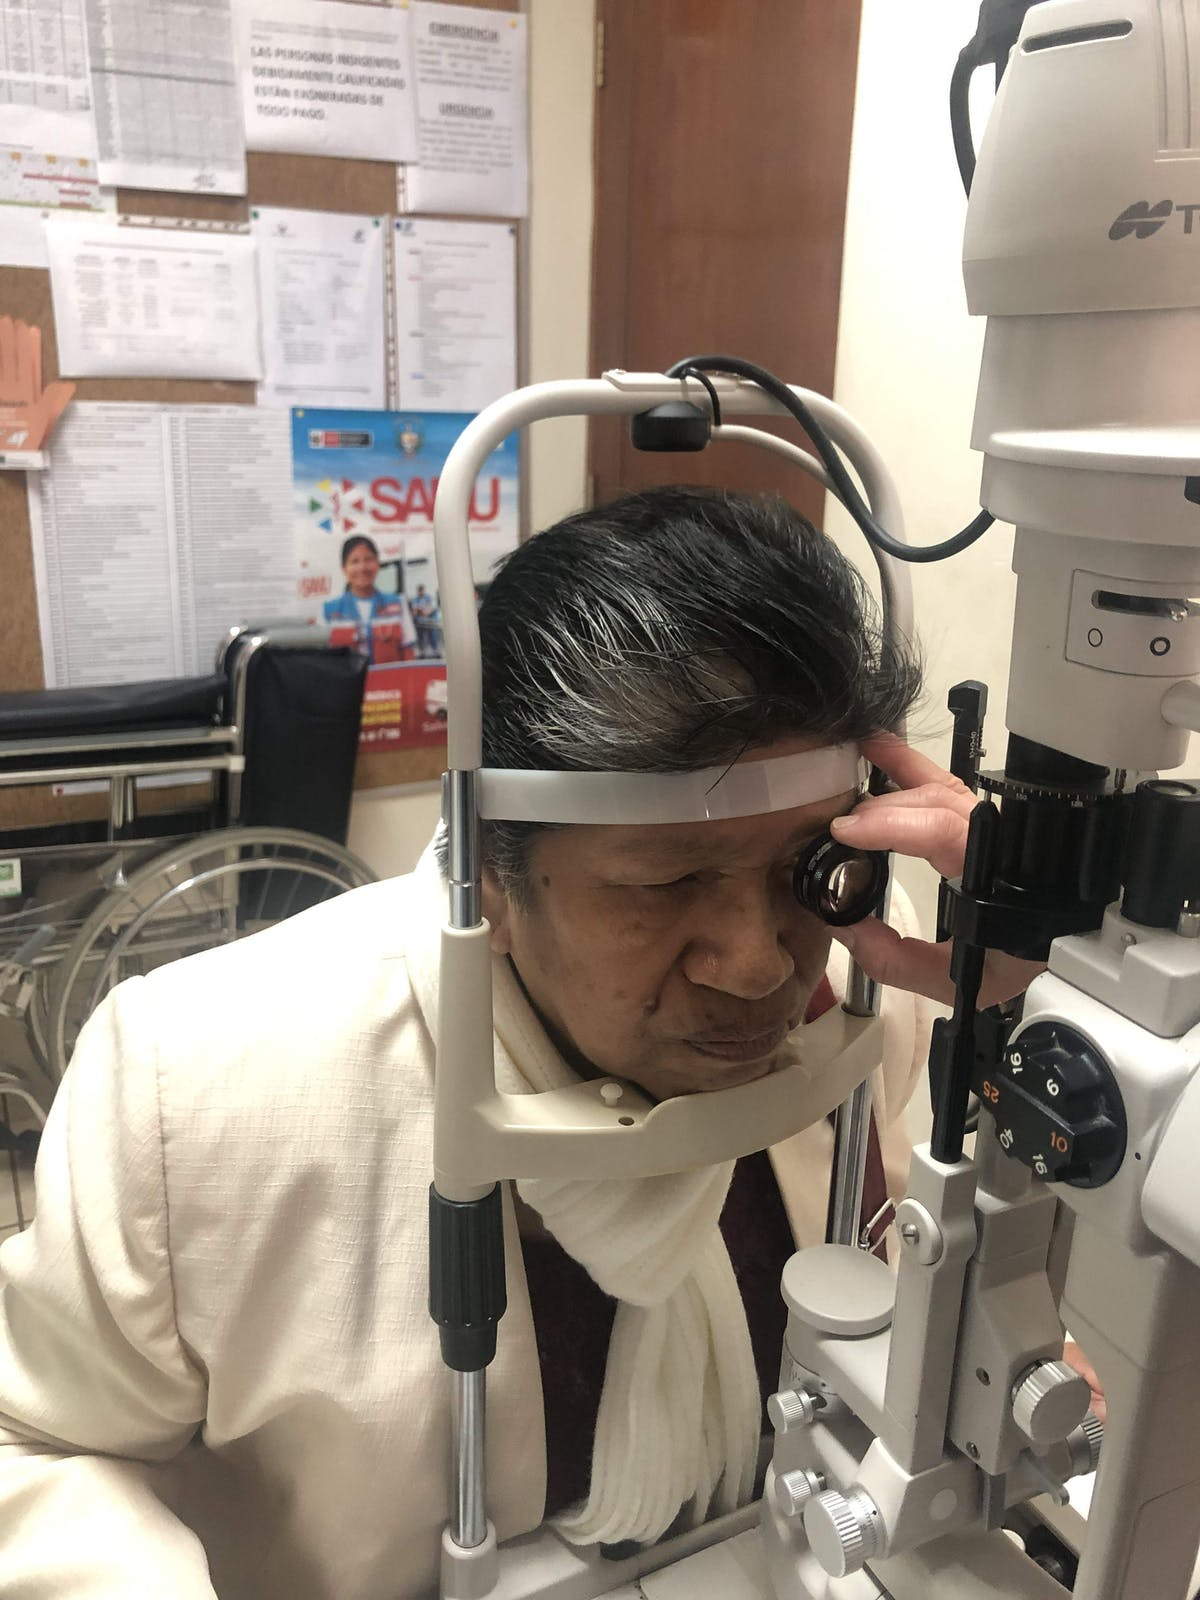 Post-cataract surgery for 69-year-old patient Maria